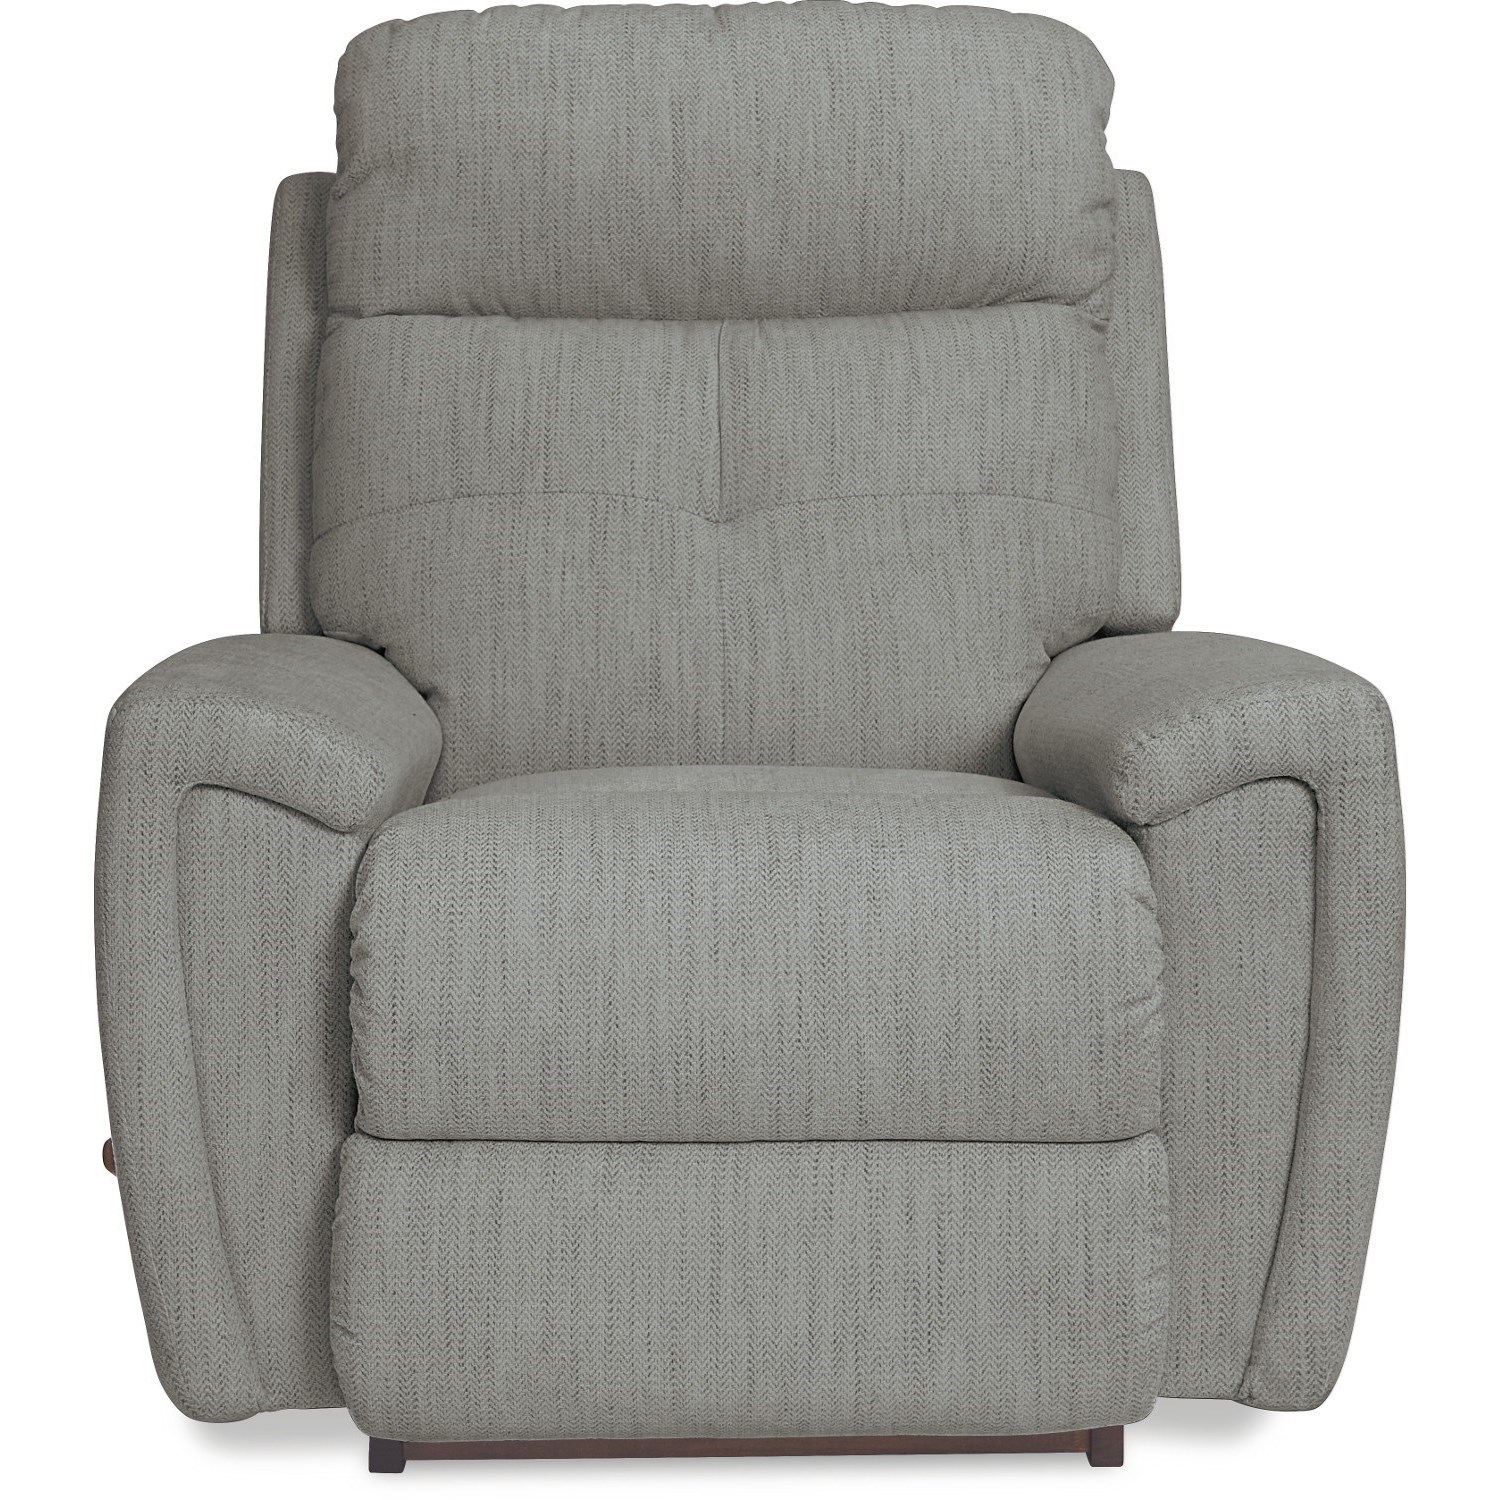 Contemporary PowerReclineXRw Wall Saver Recliner with USB Charging Port